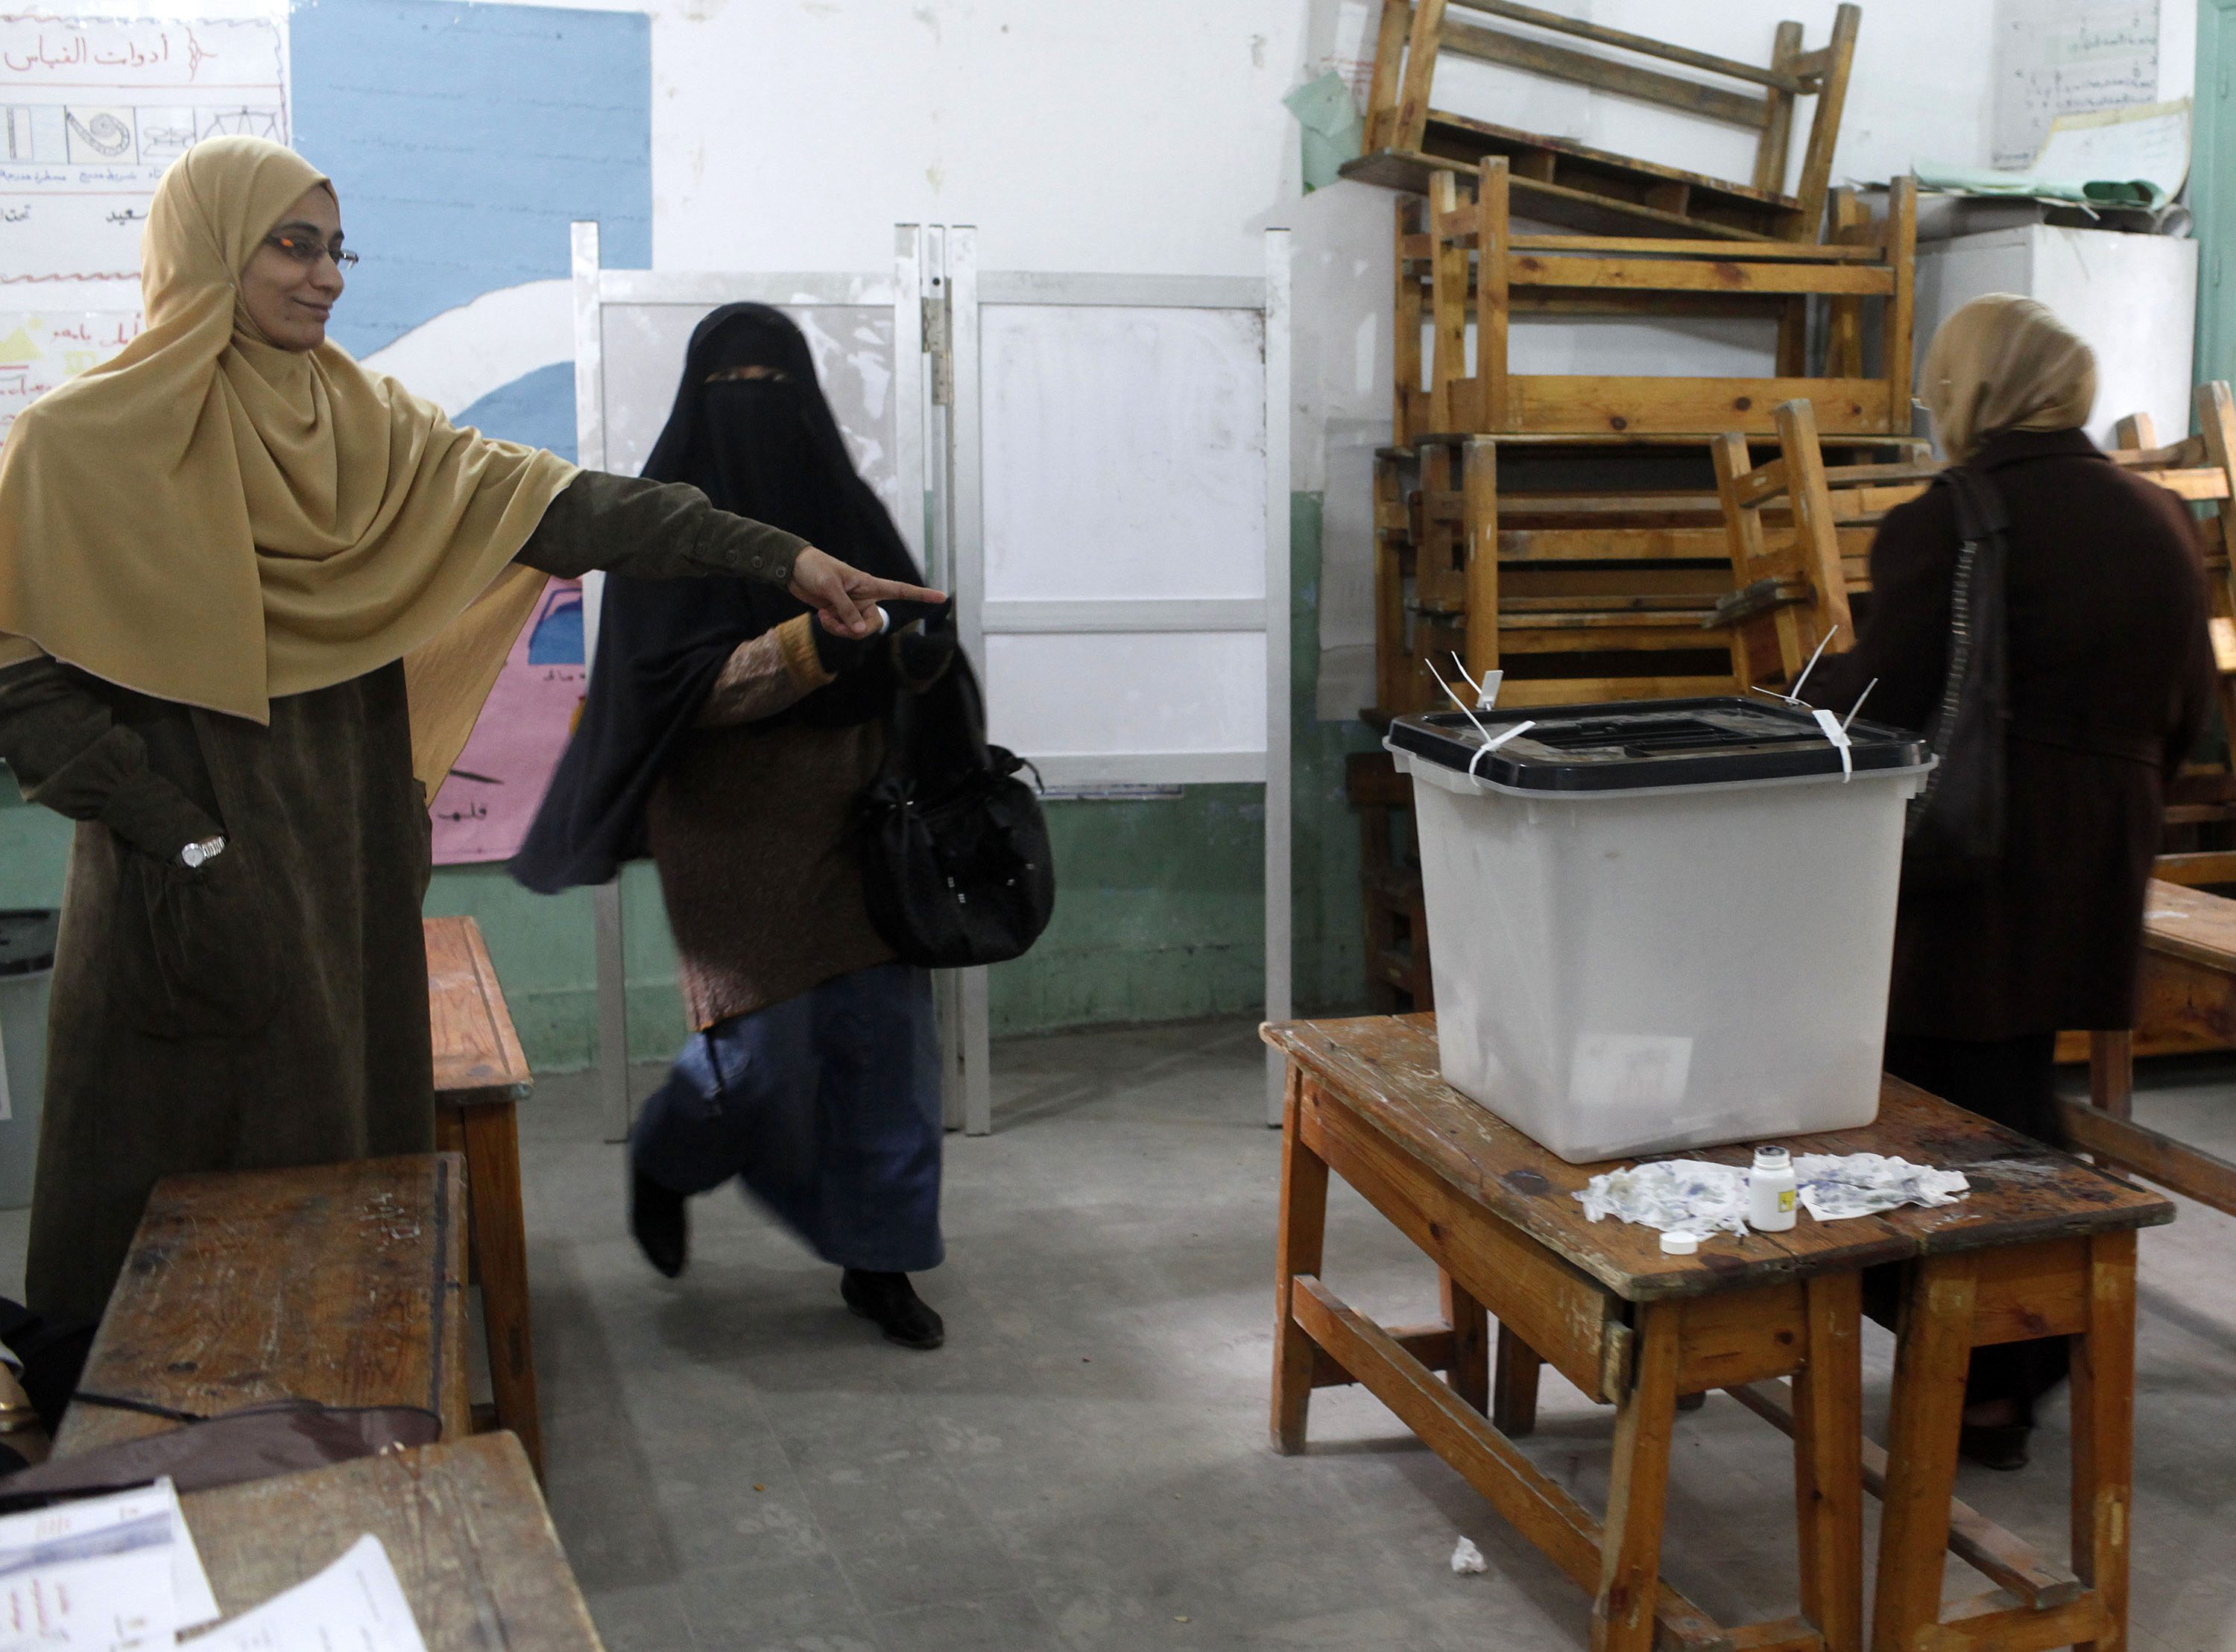 Constitution referendum result announced Tuesday - state TV